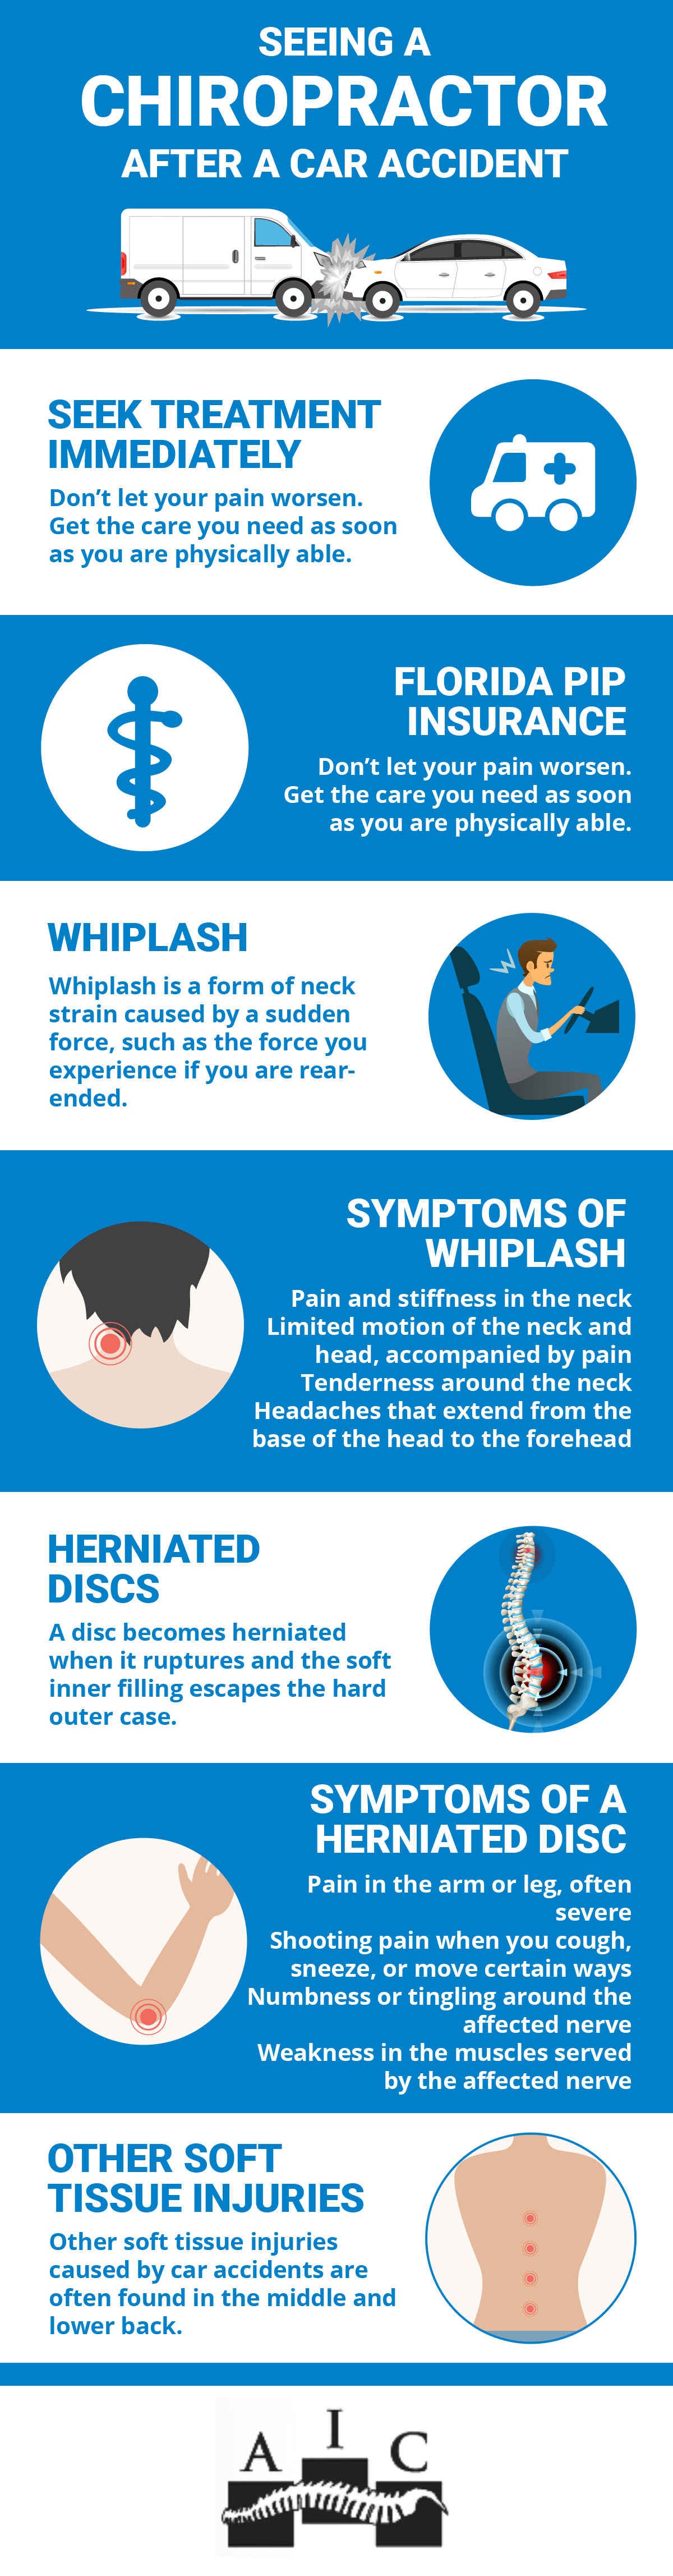 Seeing a Chiropractor after a car accident inforgraphic